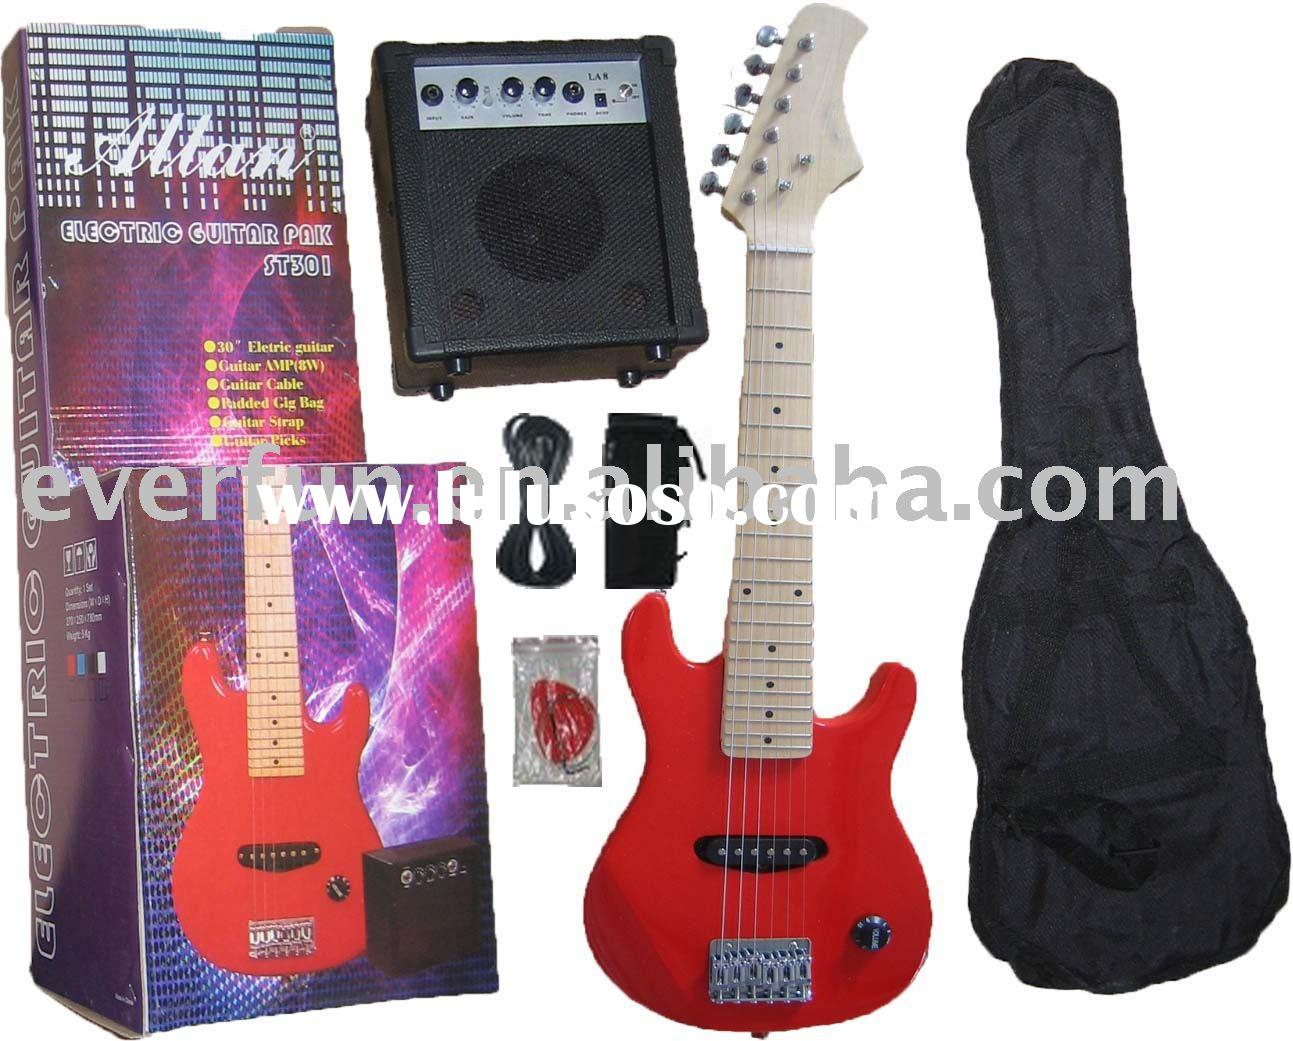 30'' Electric guitar set toy